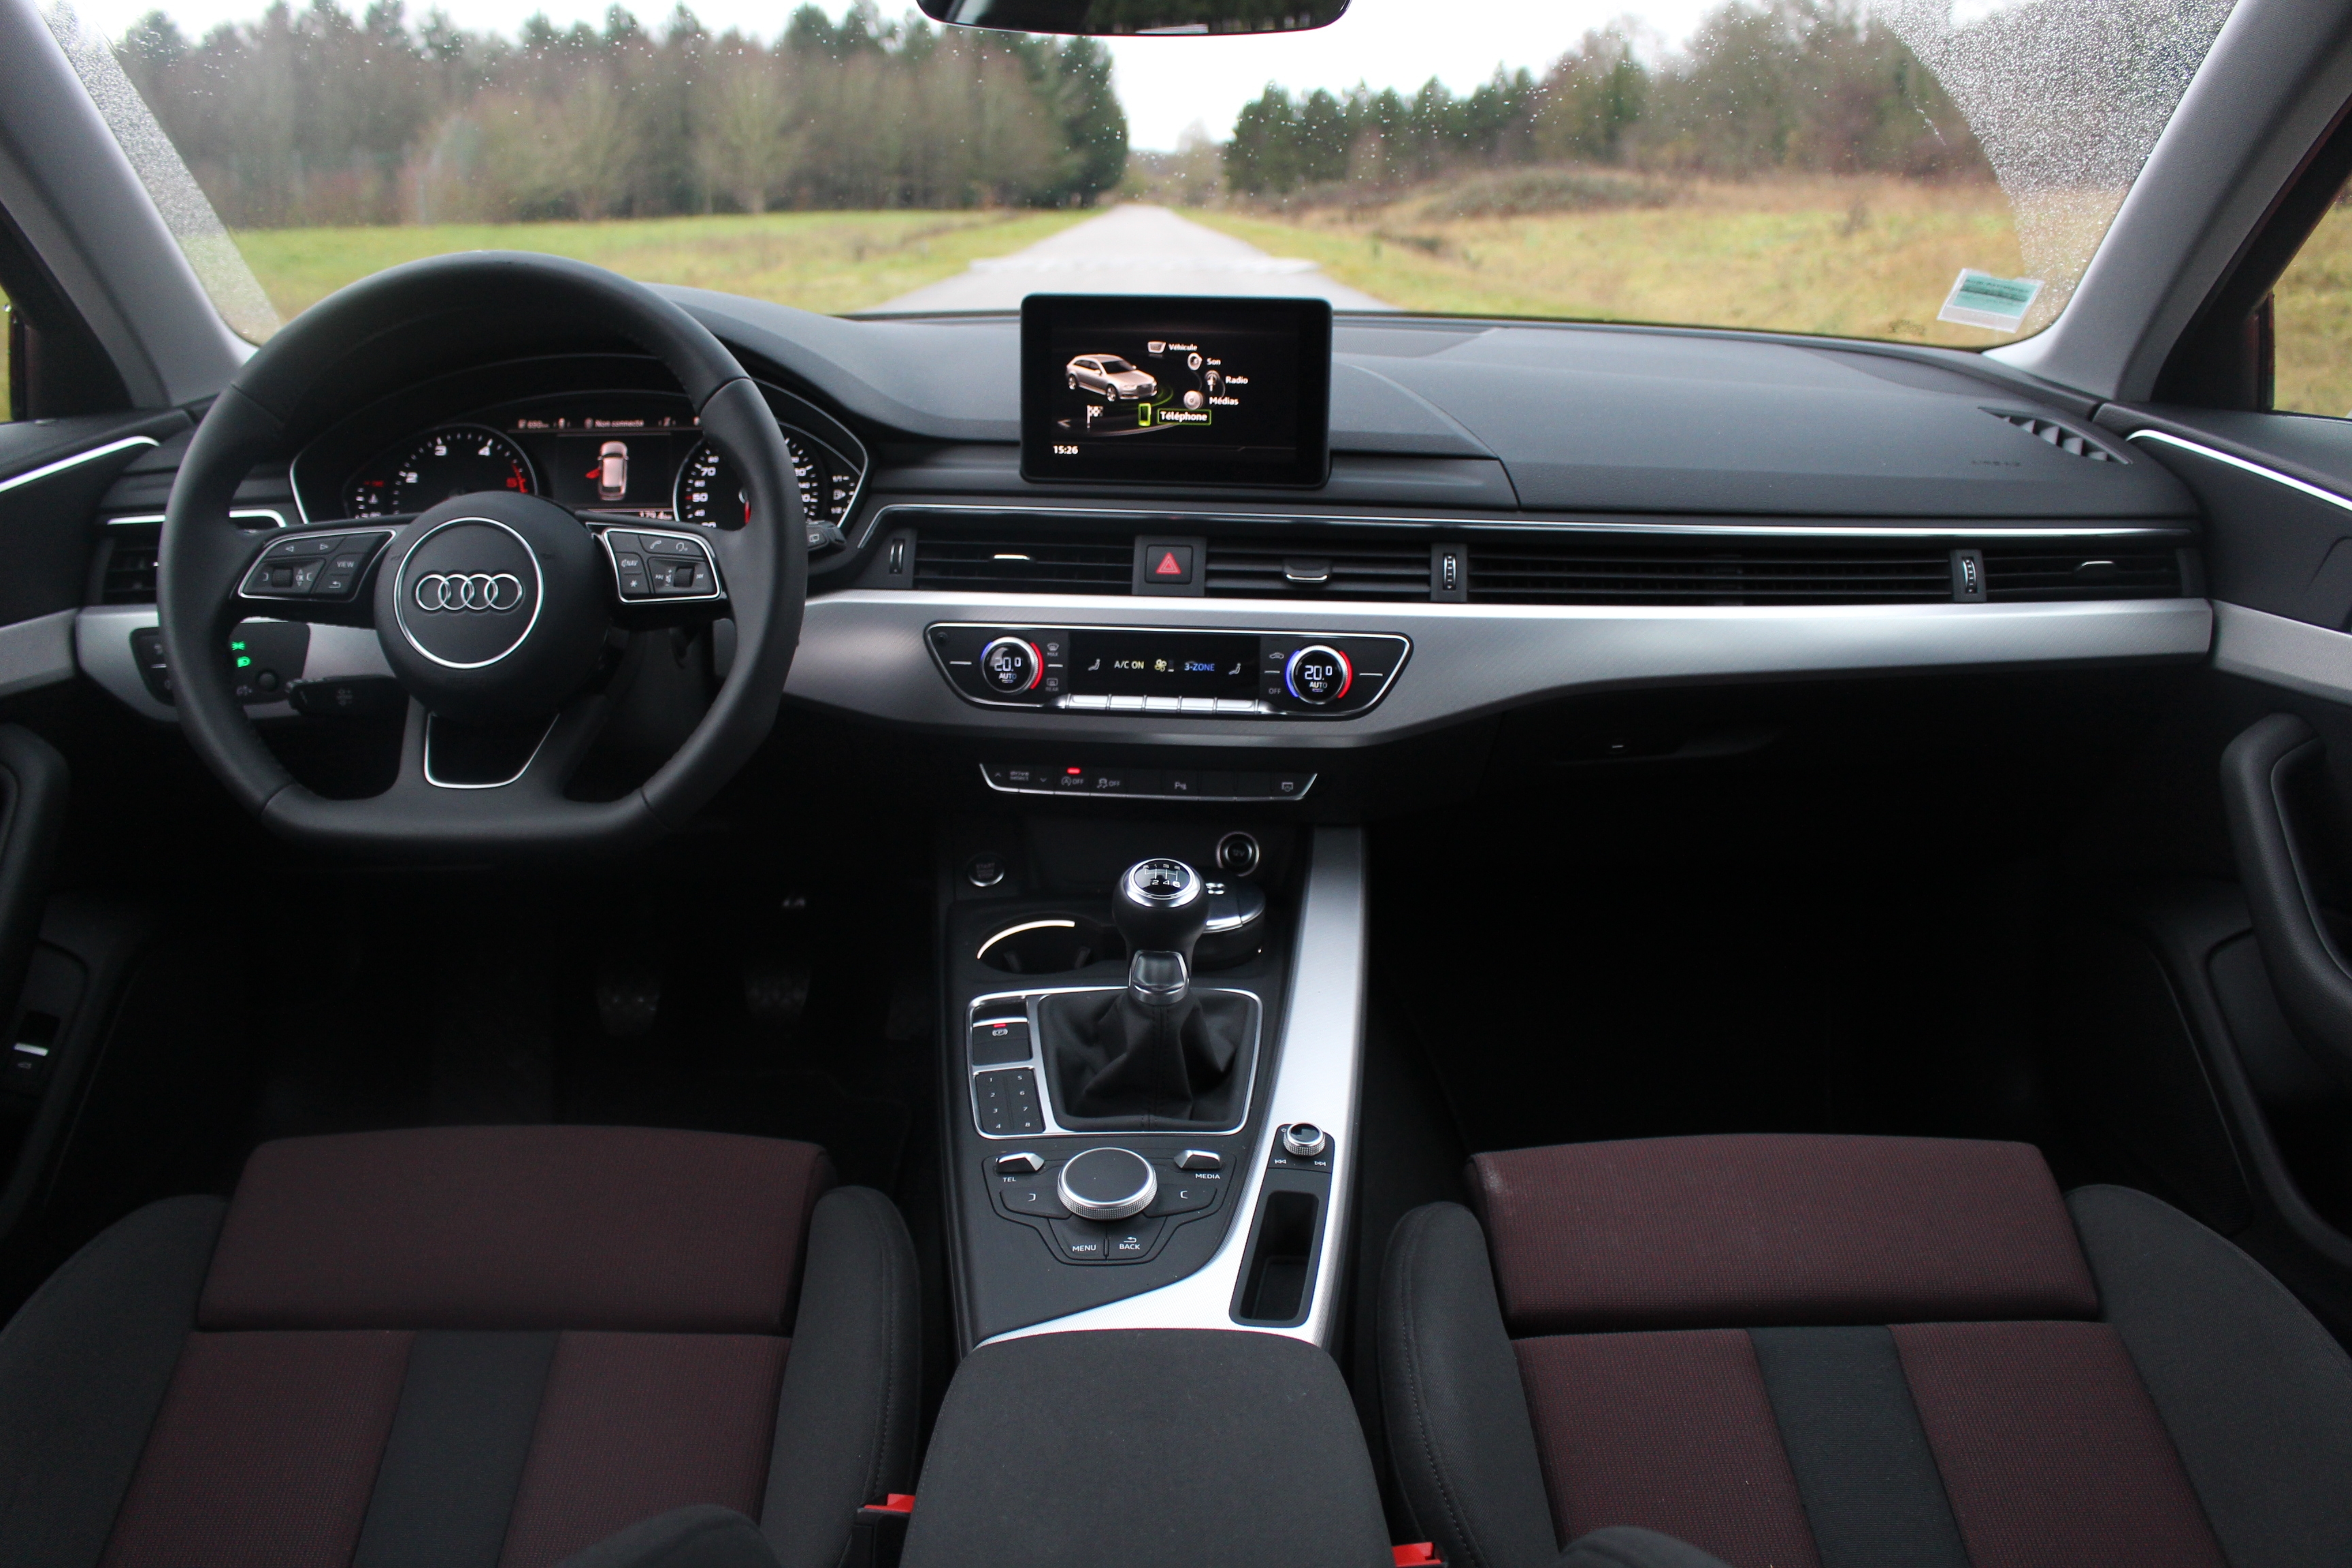 Essai audi a4 avant 2 0 tdi 150 sur des rails for Audi a4 break interieur